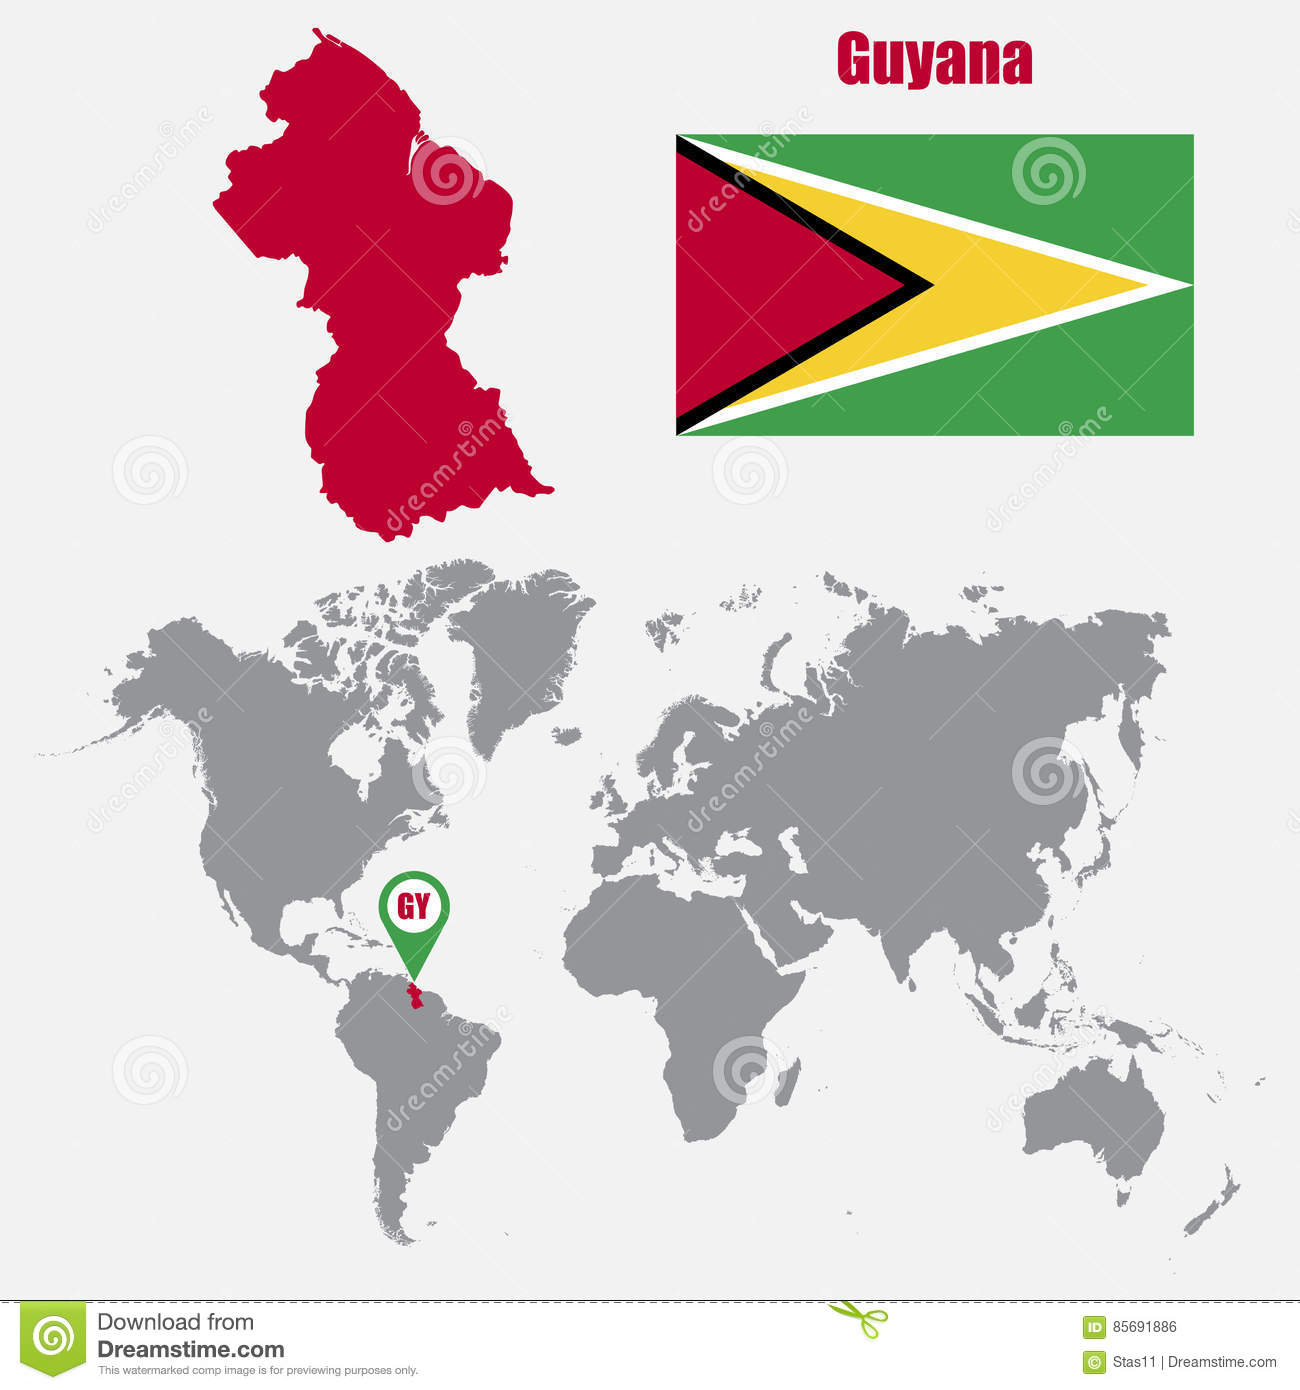 Where Is Guyana Located On The World Map.Guyana Map On A World Map With Flag And Map Pointer Vector